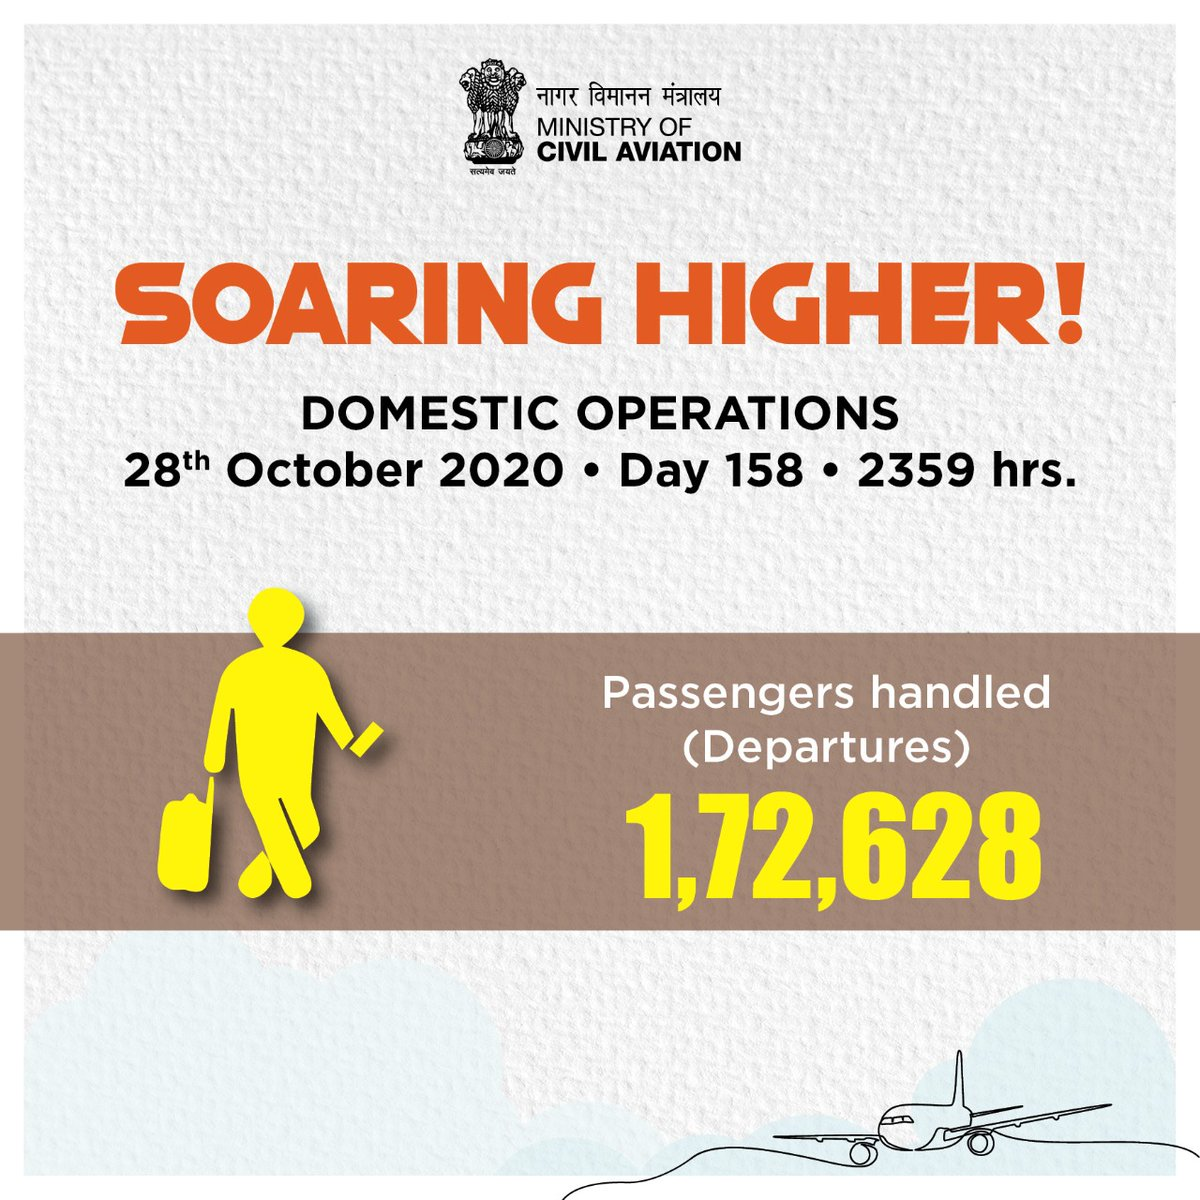 India soaring higher!  1,72,628 passengers took to the skies across the country on 28th October. Aviation operations continue to soar! #SabUdenSabJuden #IndiaFliesHigh https://t.co/hfMBJzC0zJ